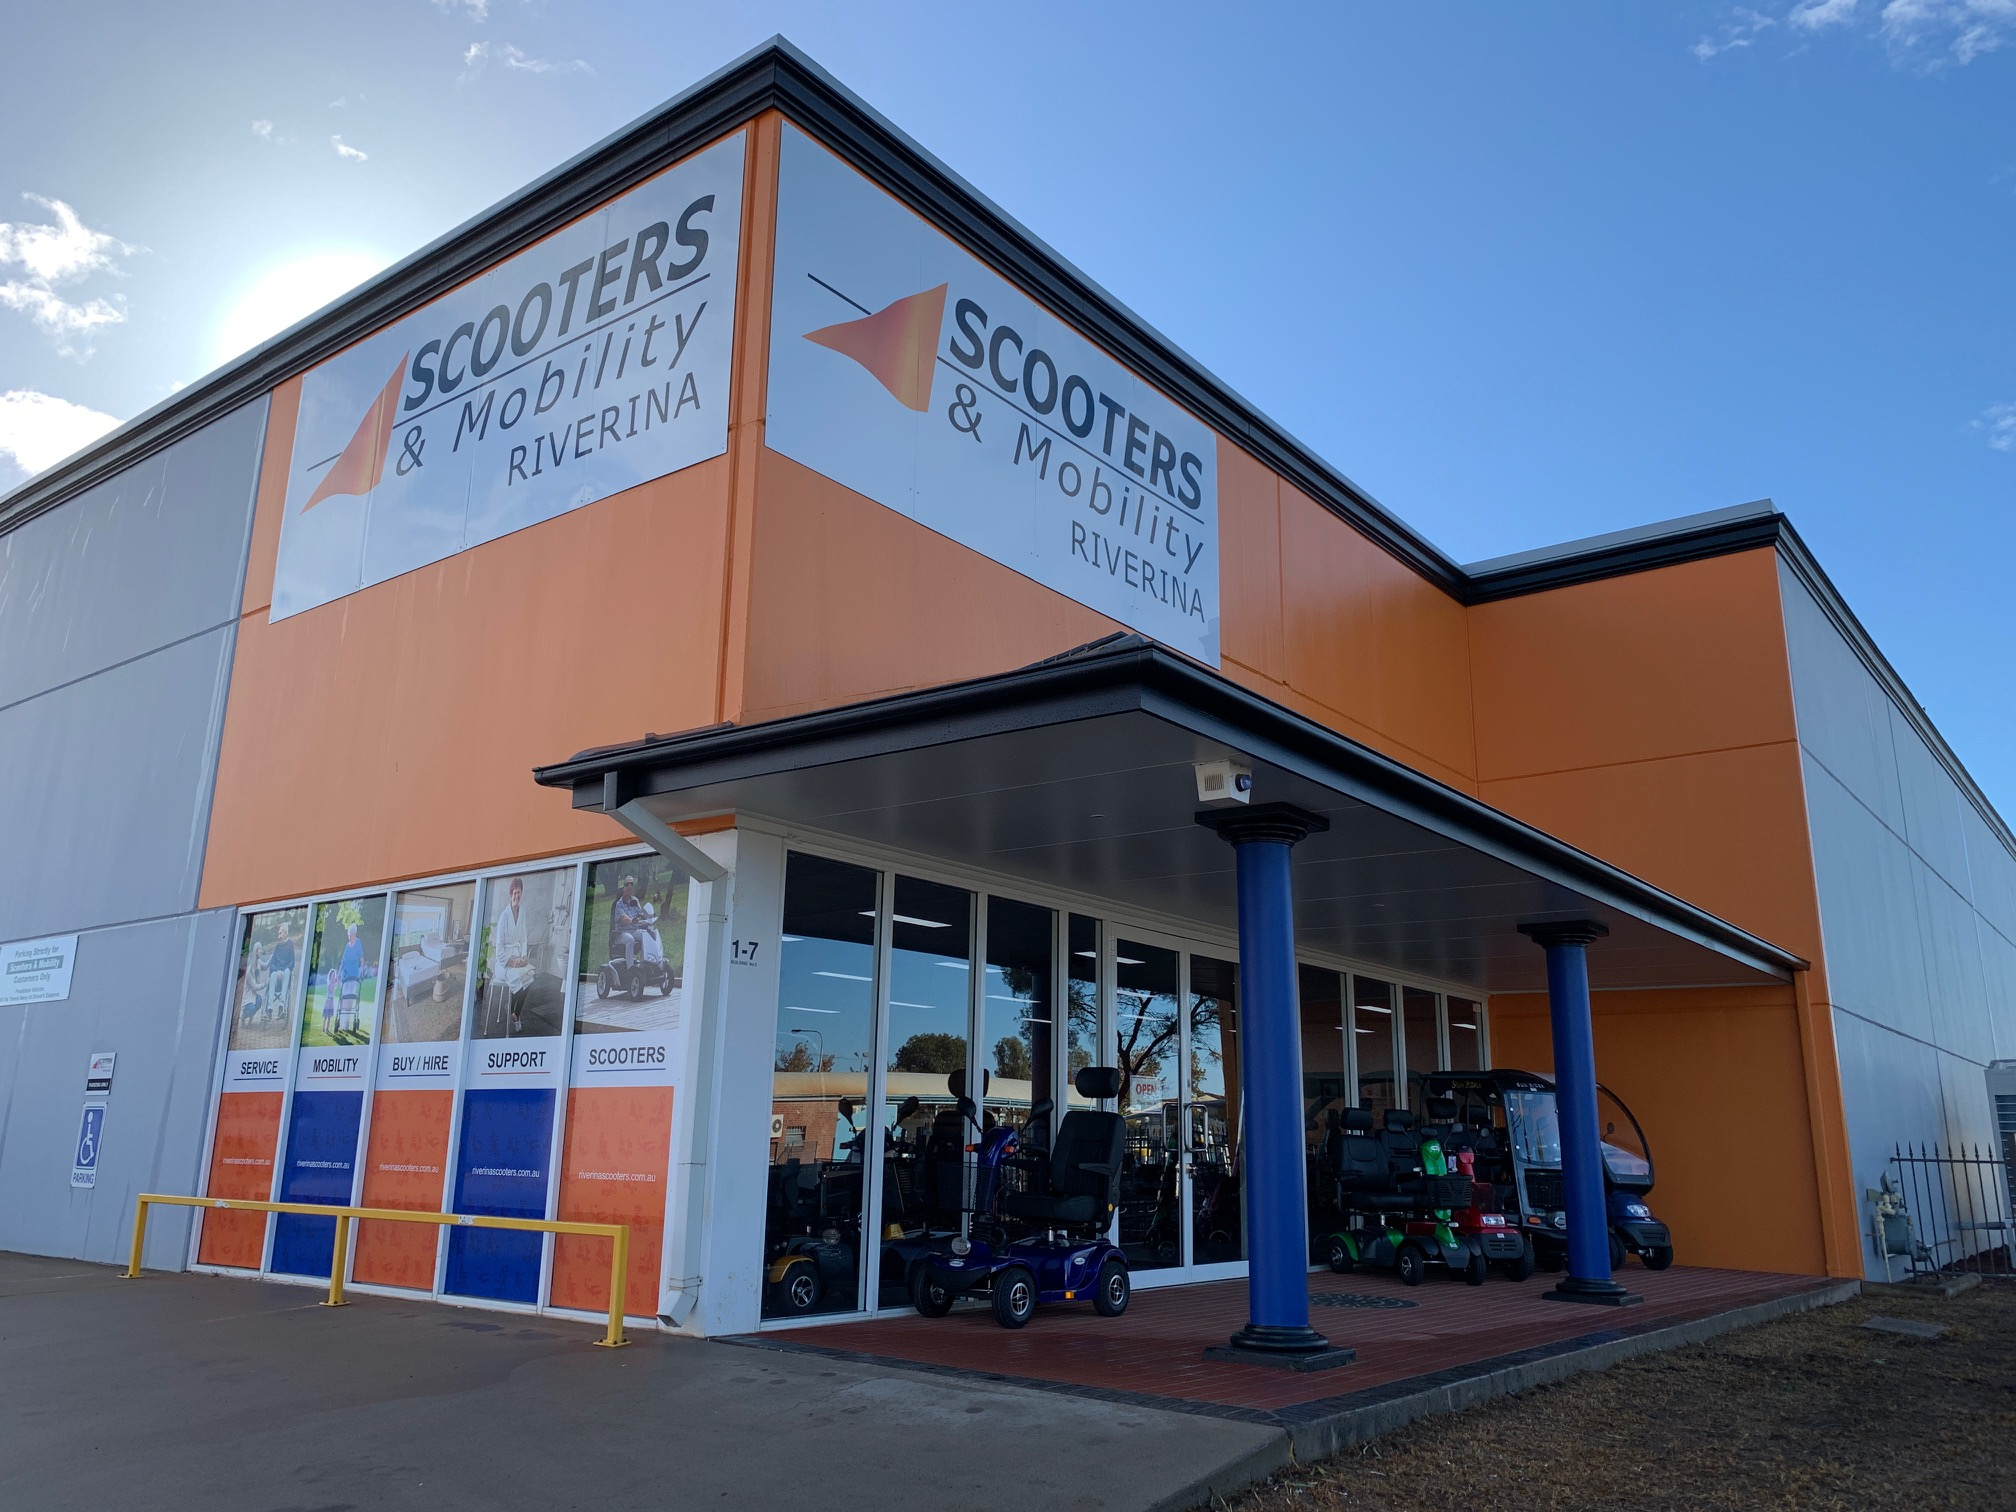 Scooters & Mobility Riverina – Griffith